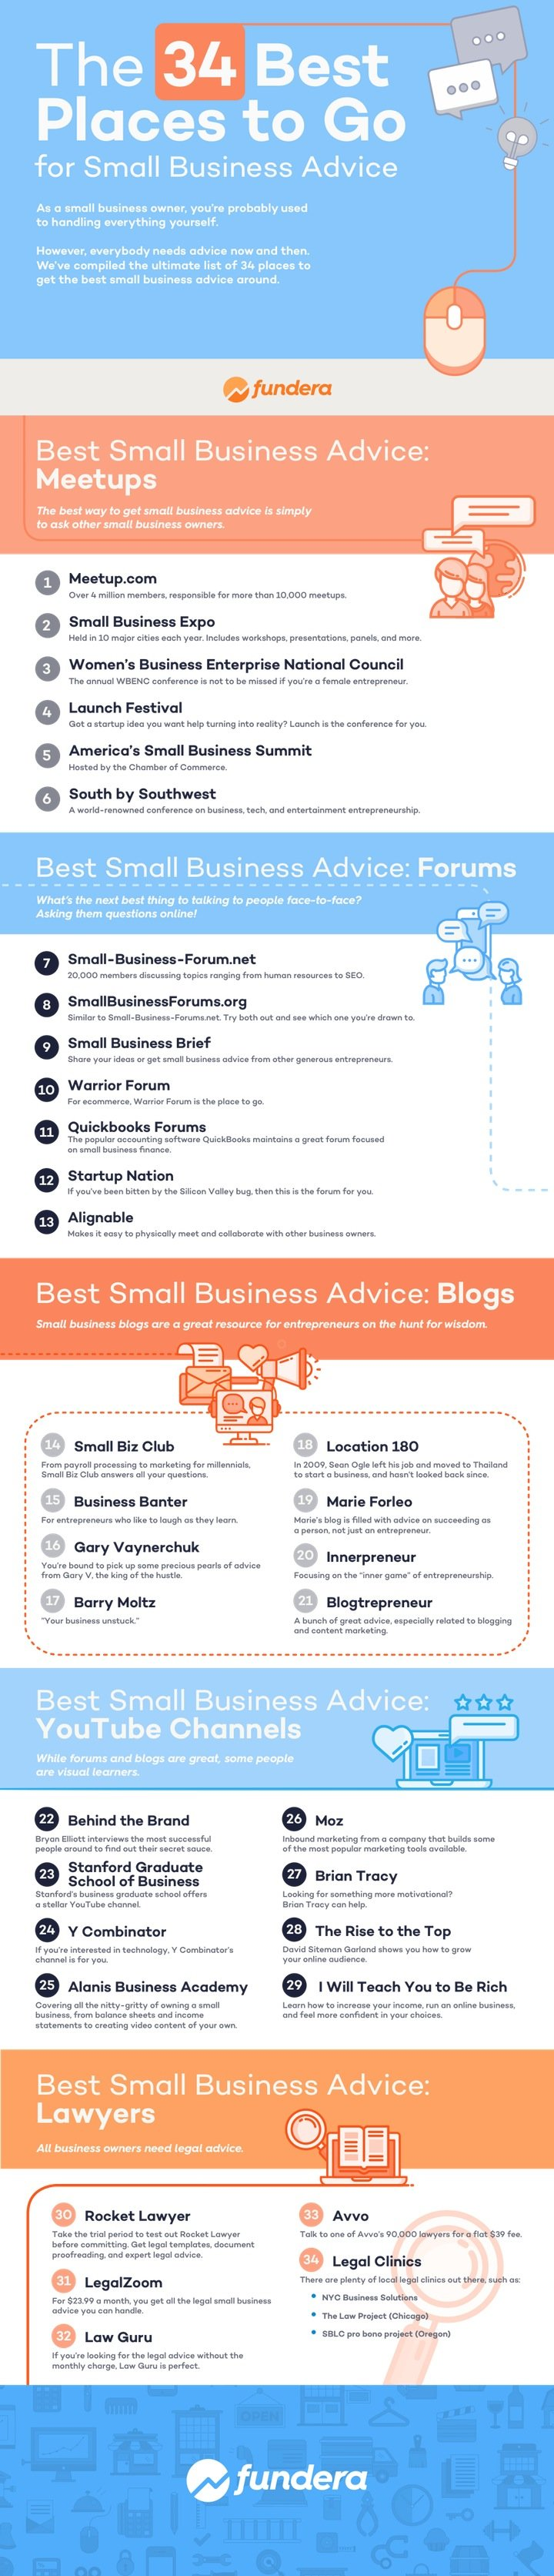 the-34-best-places-to-go-for-small-business-advice-infographic